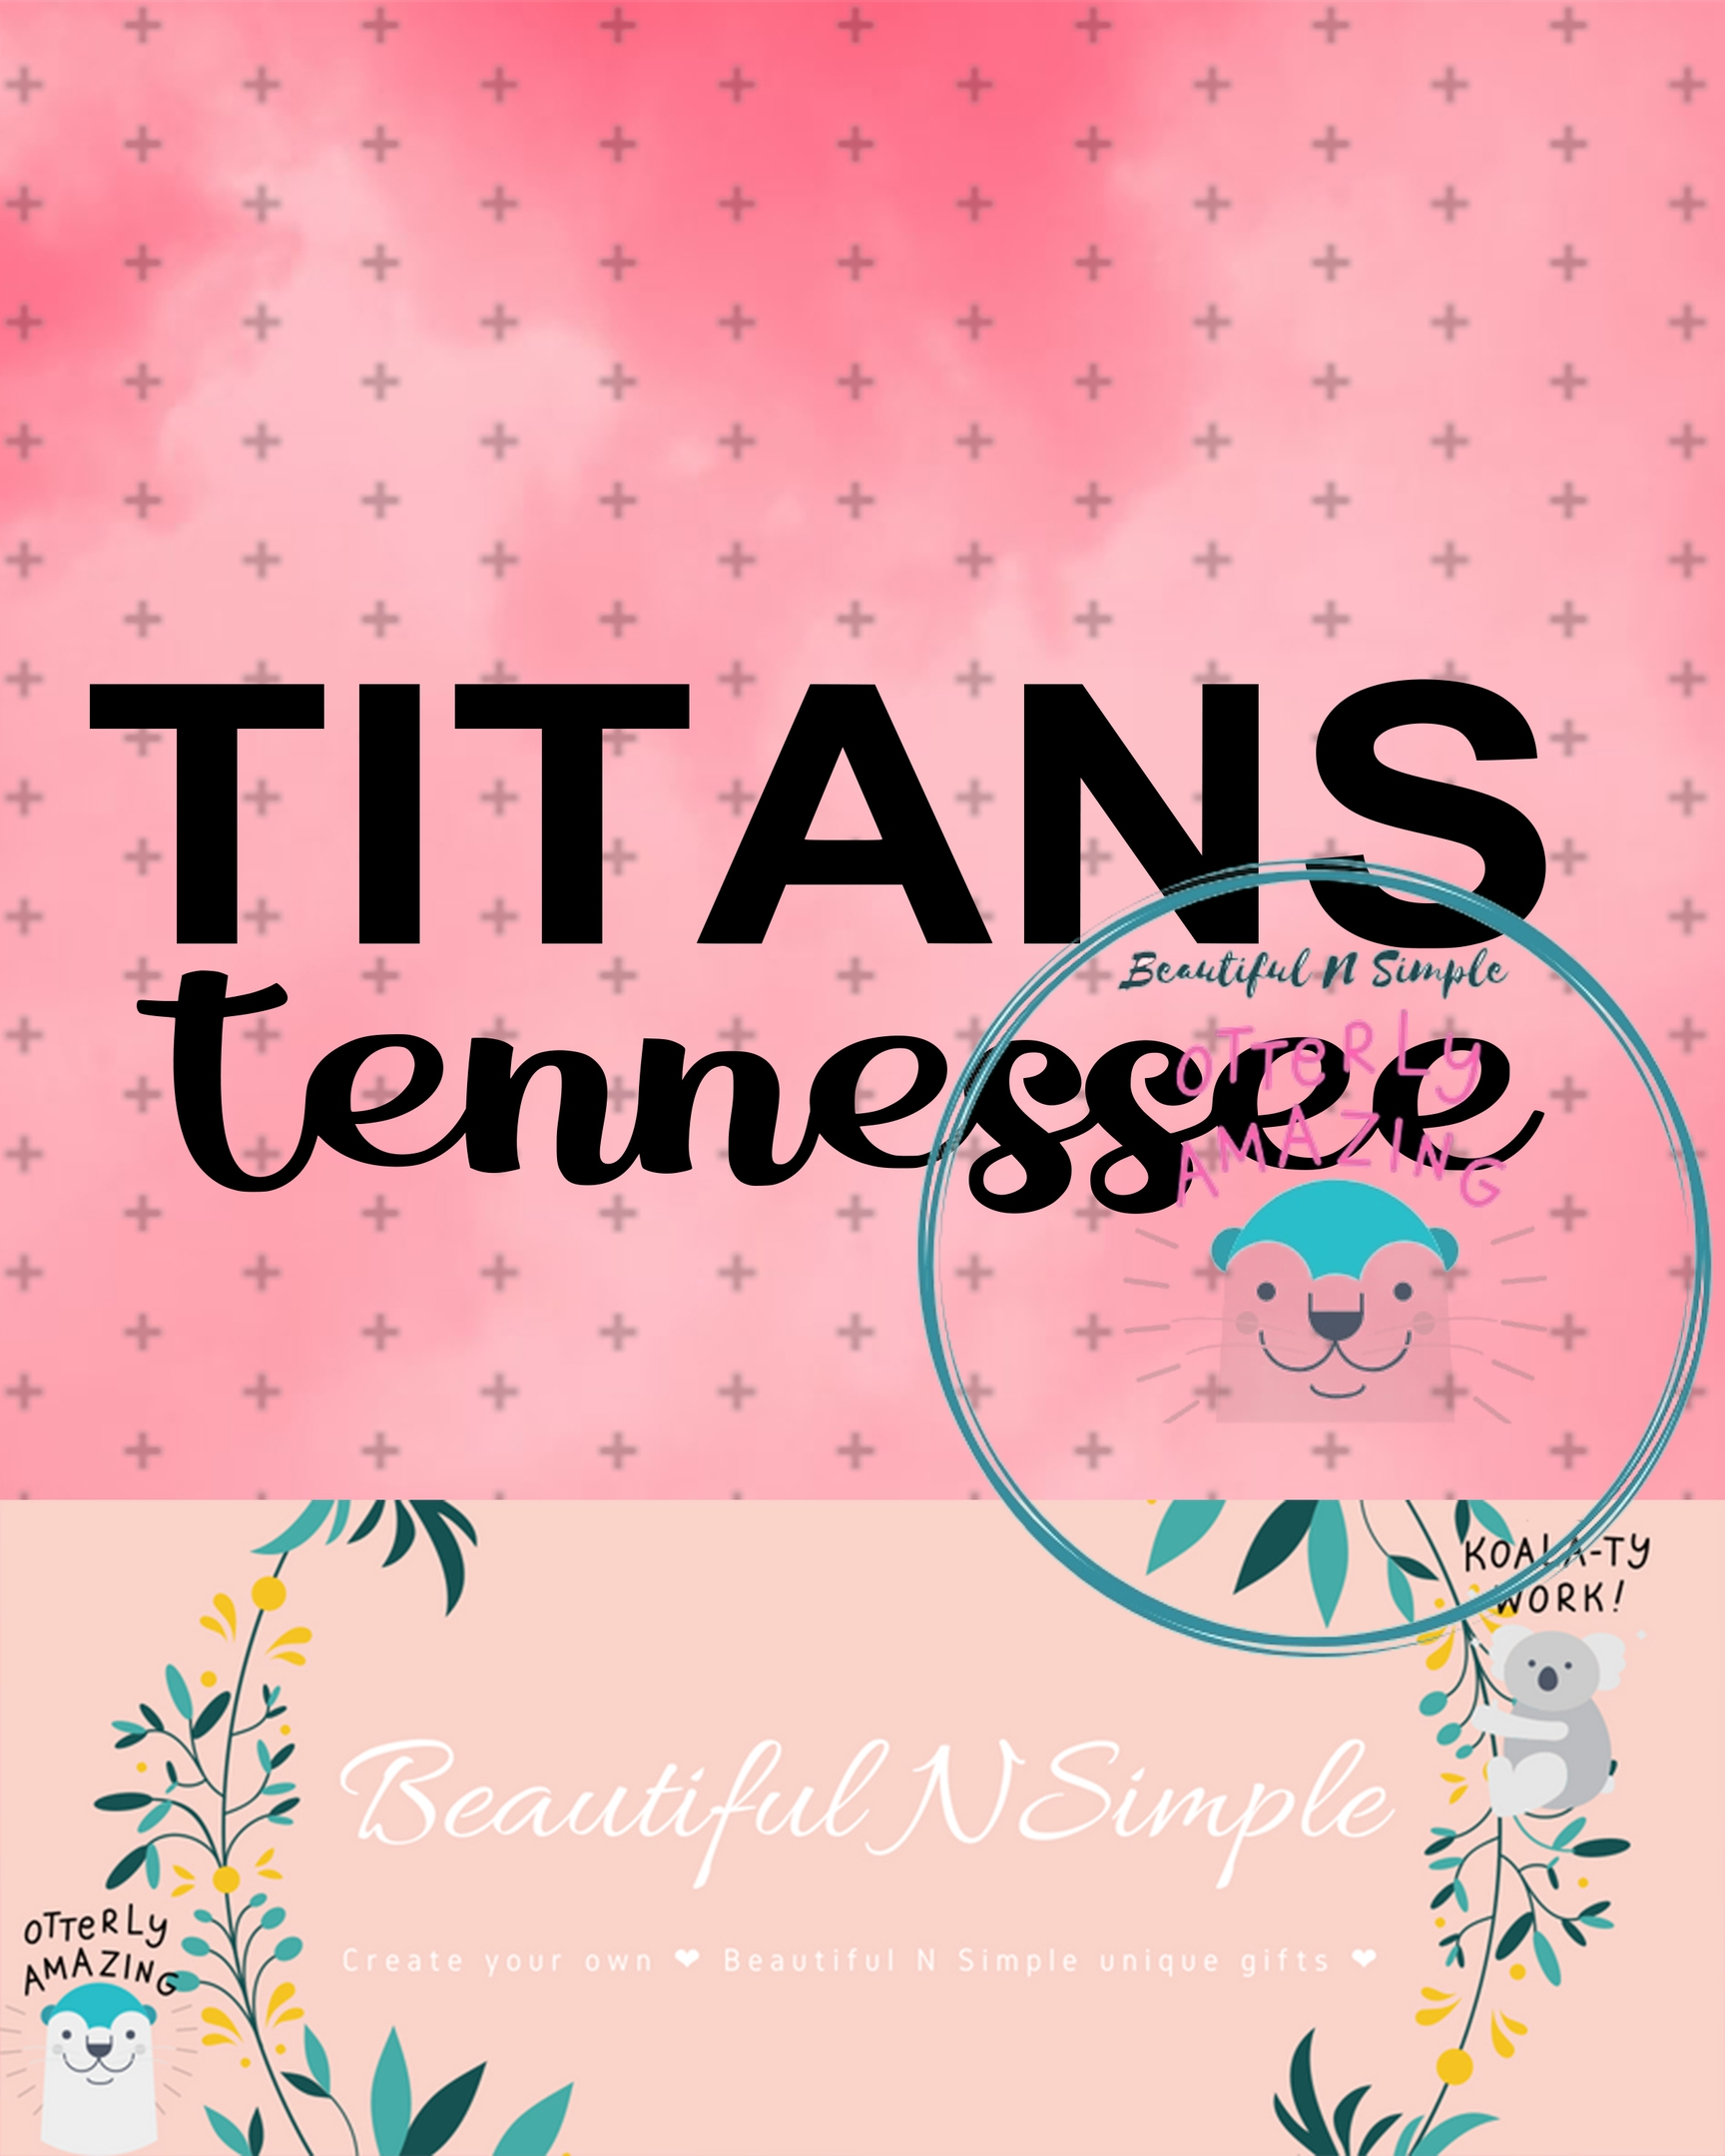 Titans Tennessee Svg And Dxf File Beautifulnsimple